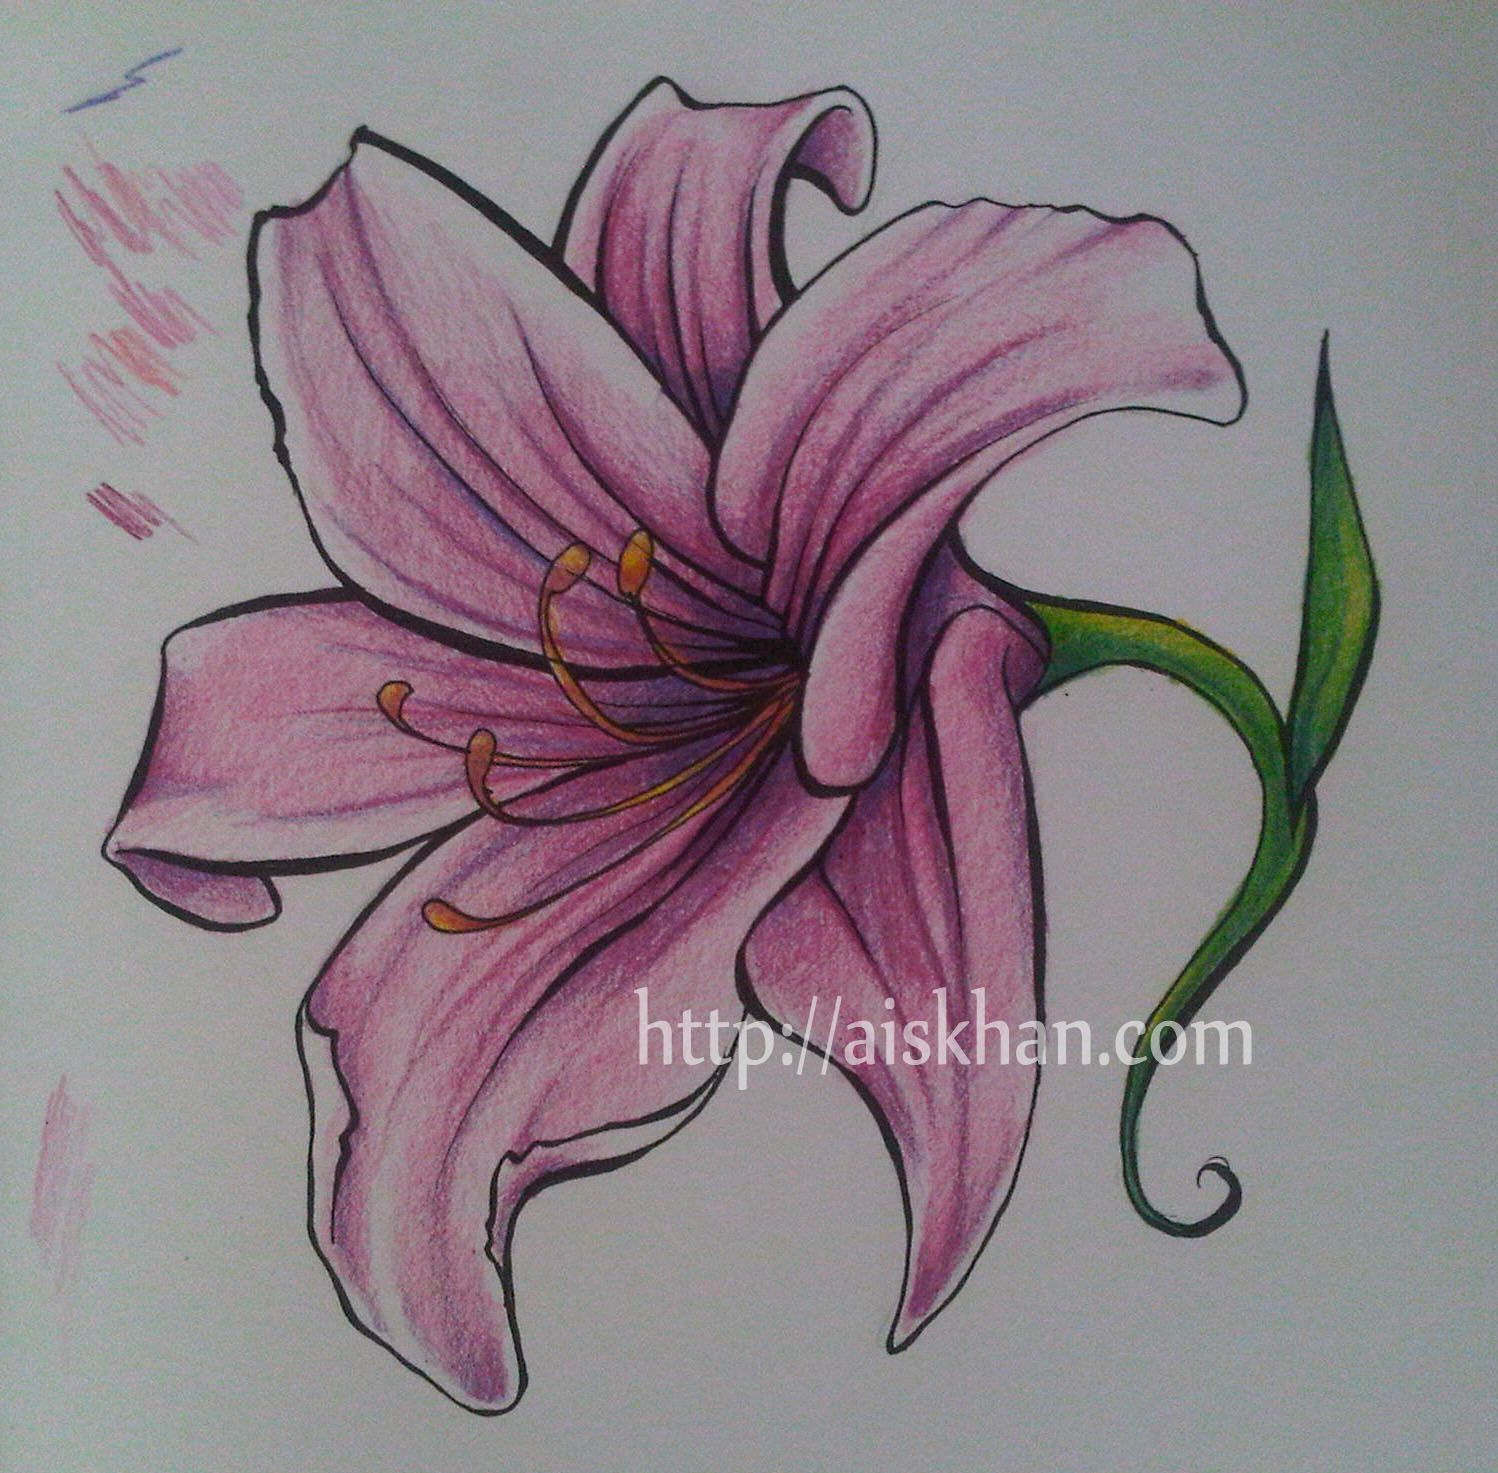 Lily flower tattoo drawing at getdrawings free for personal 1498x1473 free download lily flower tattoo drawing izmirmasajfo Gallery